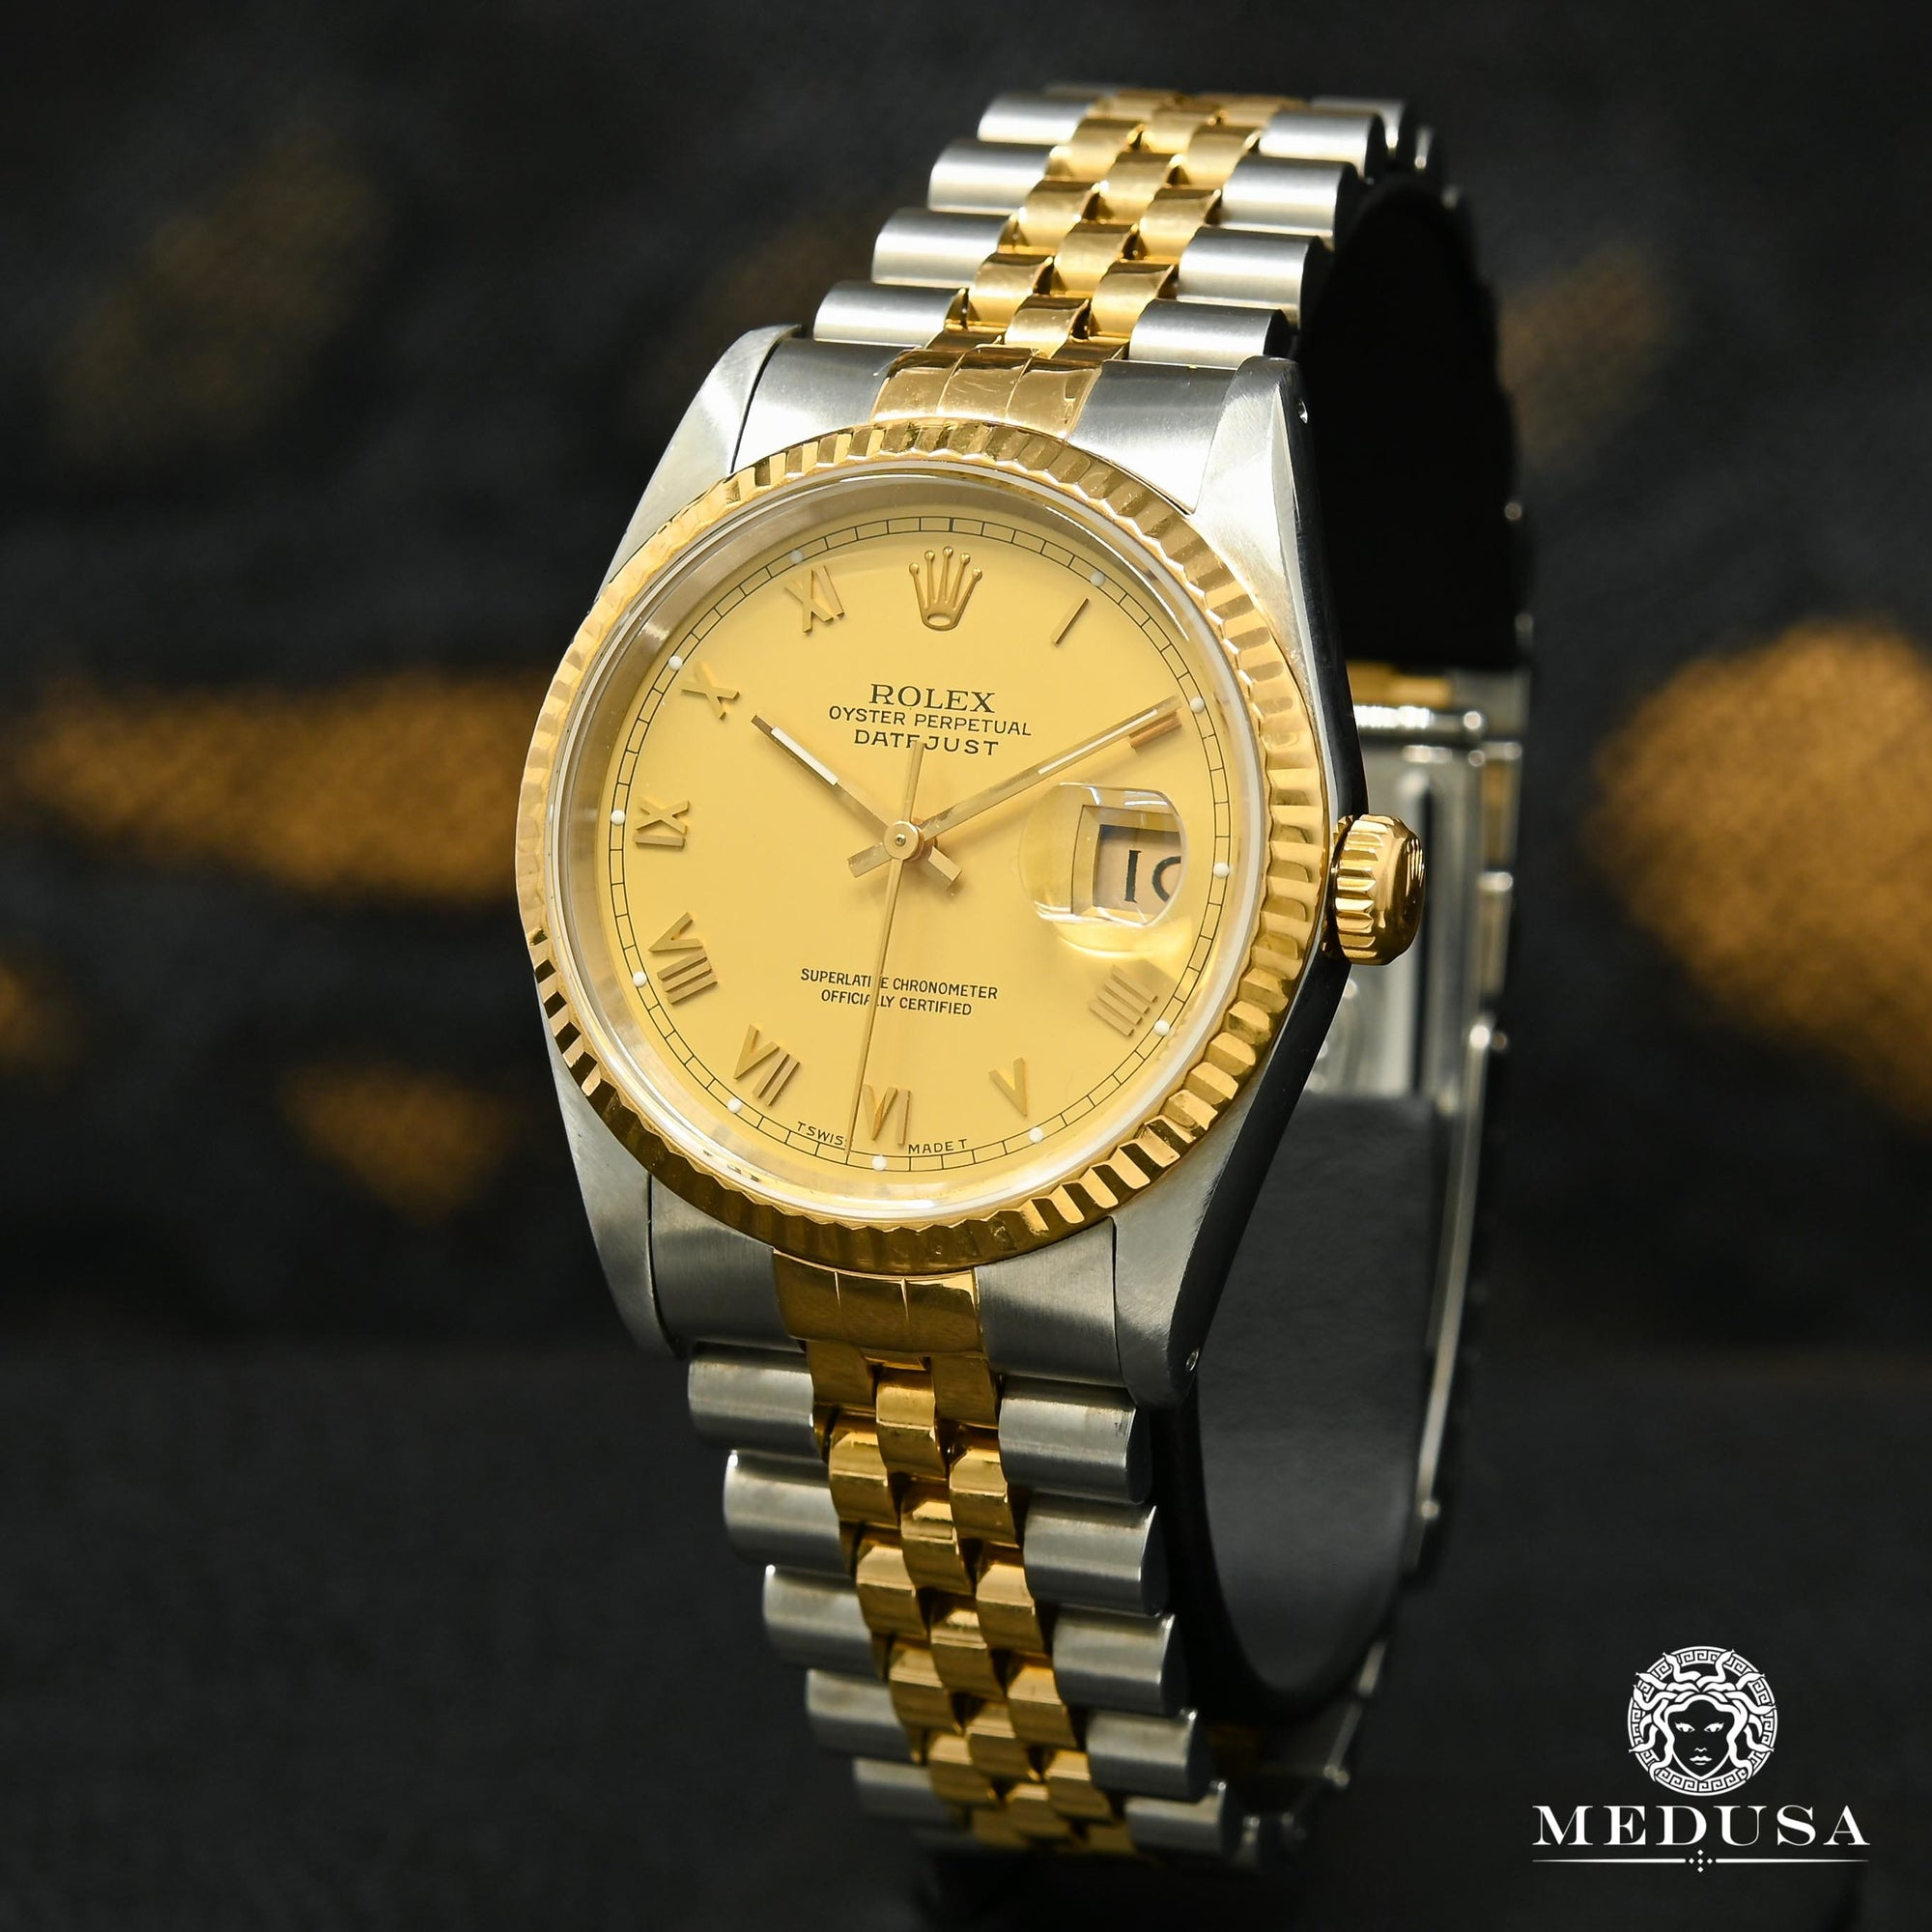 Rolex Datejust 36mm - Champagne Romain